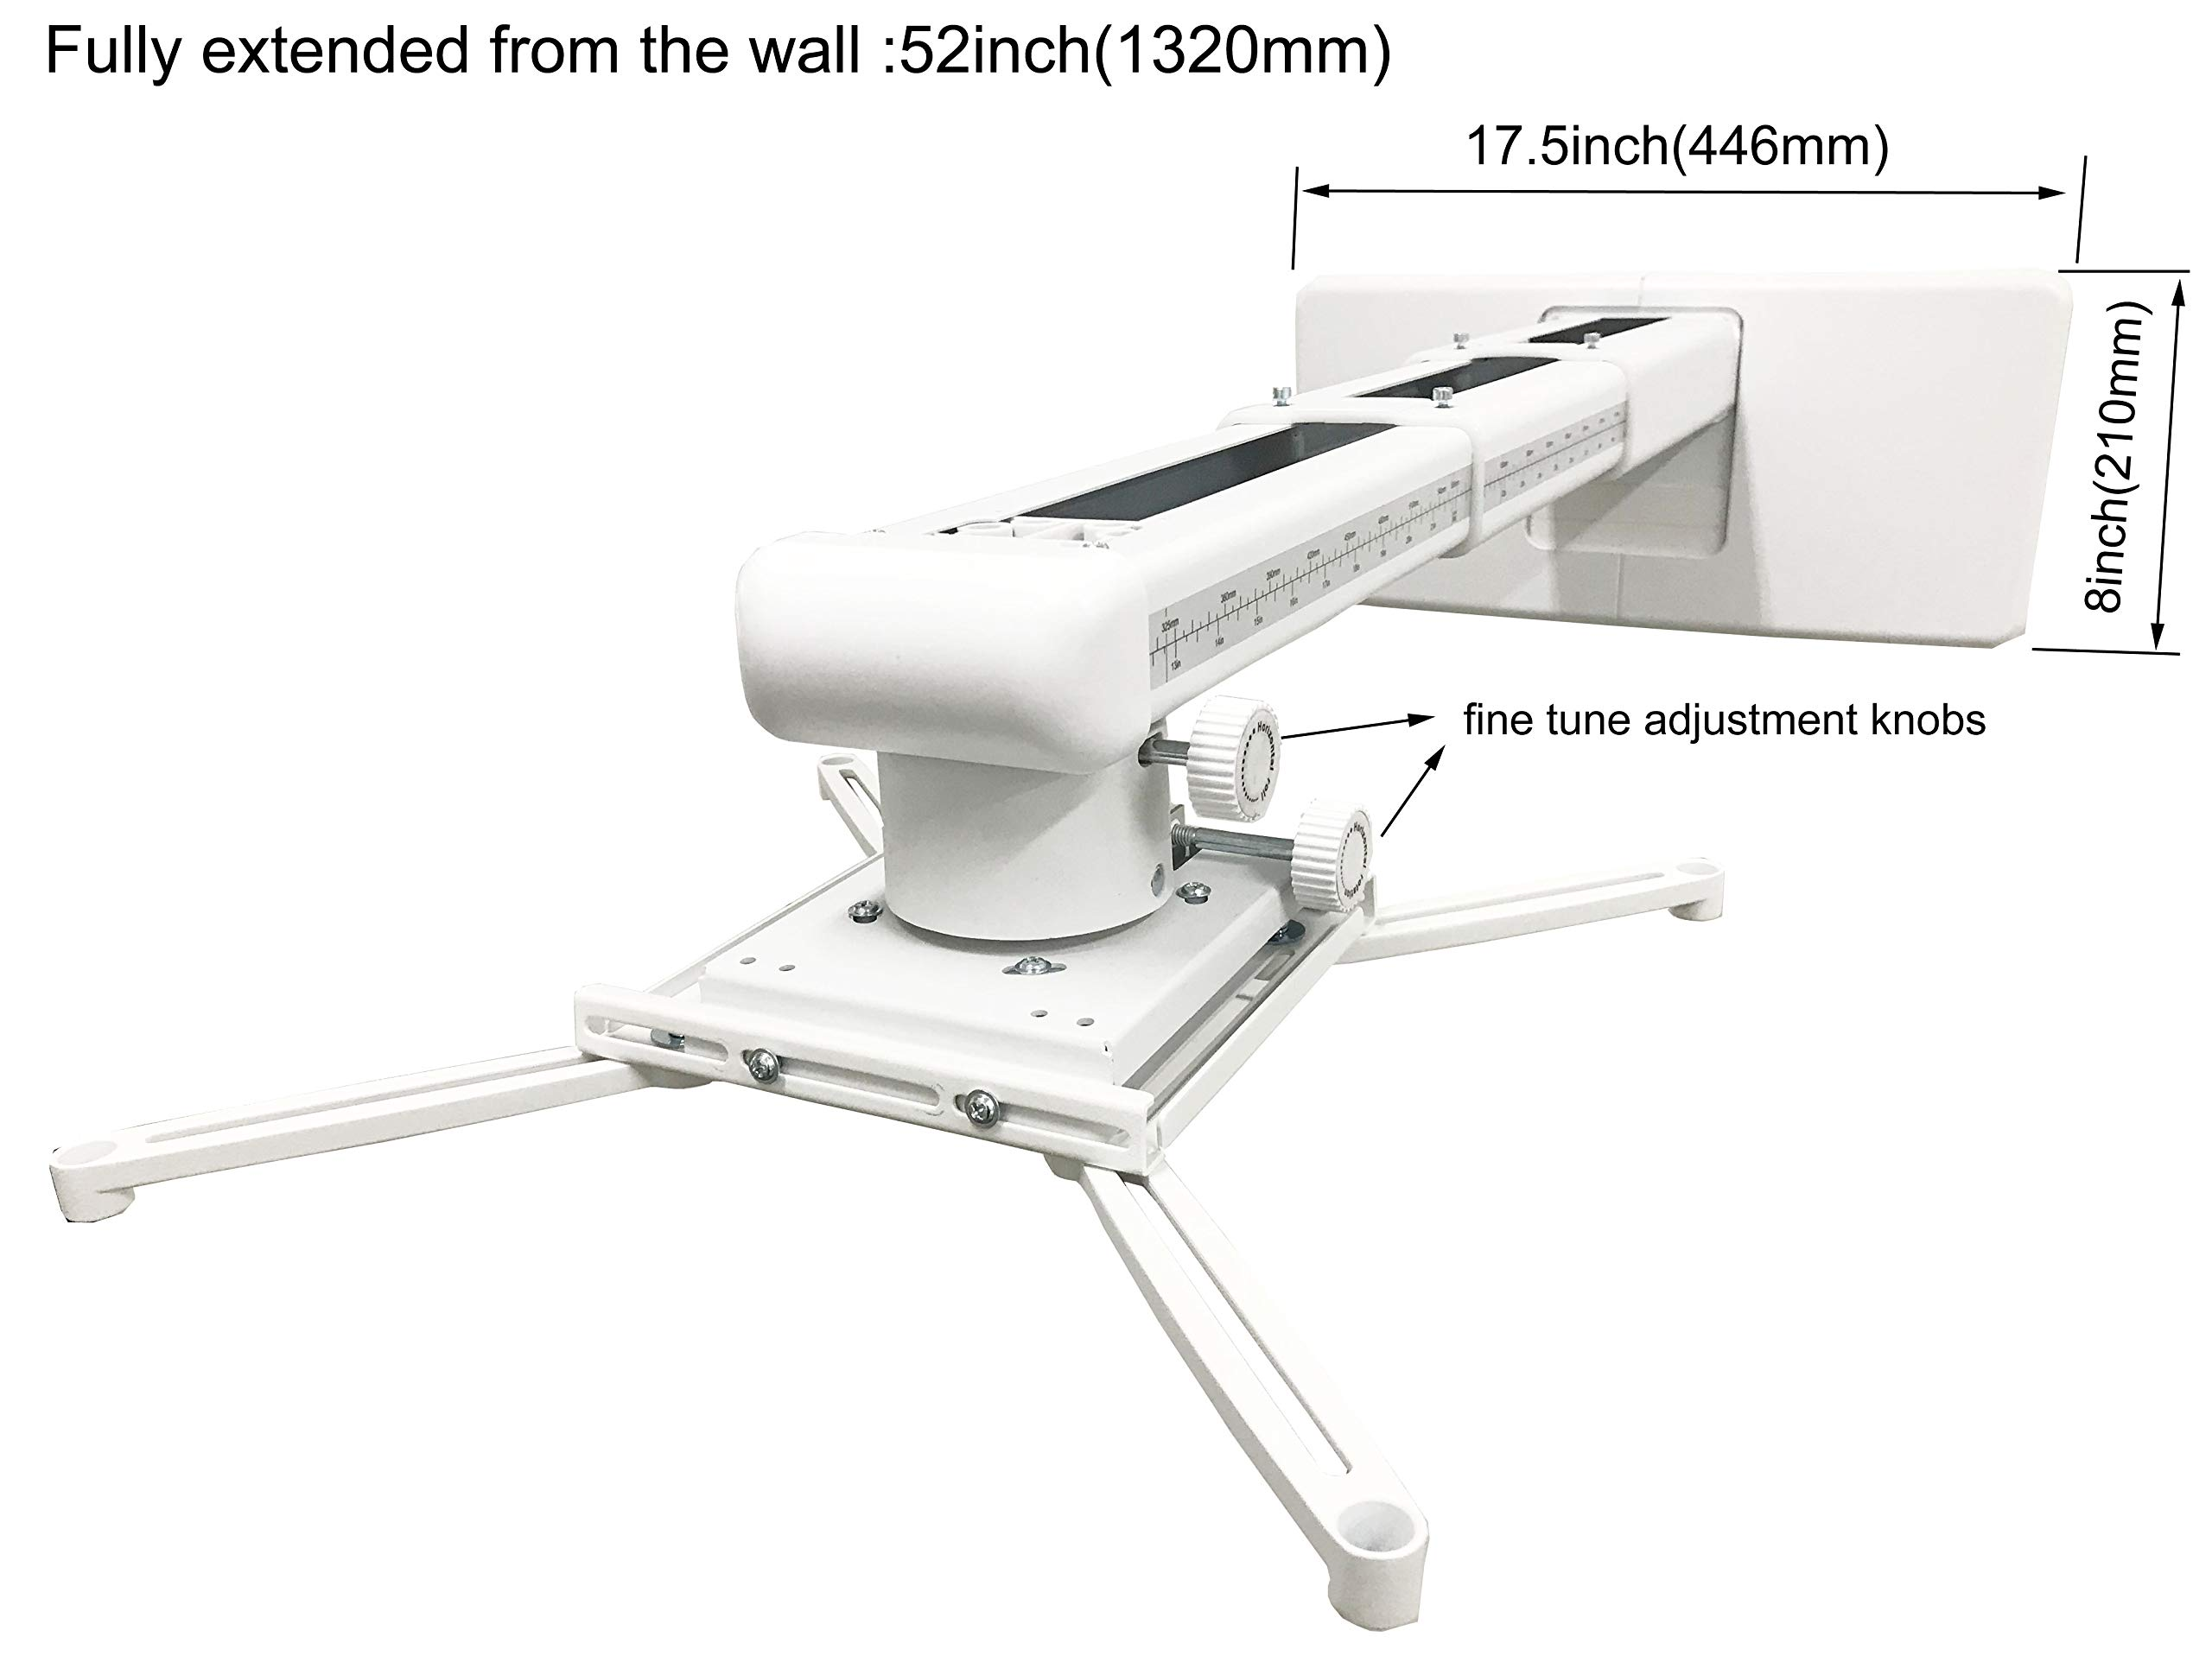 Viewtech Universal Short Throw Projector Wall Mount Fully Adjustable: 22''-52'' by Viewtech